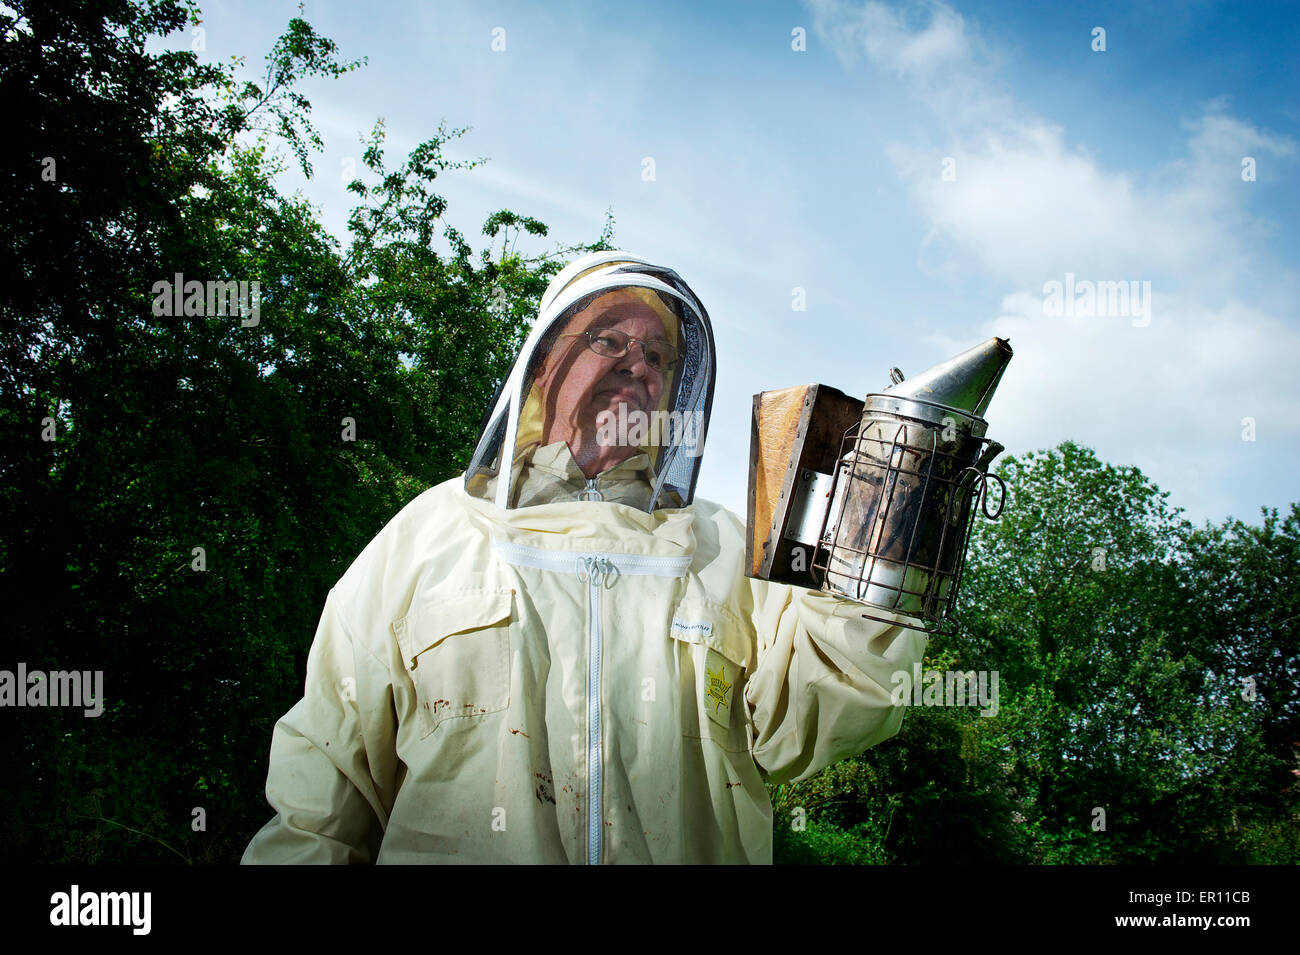 Bob Spruce holding the smoker, ready to inspect his hives - Stock Image